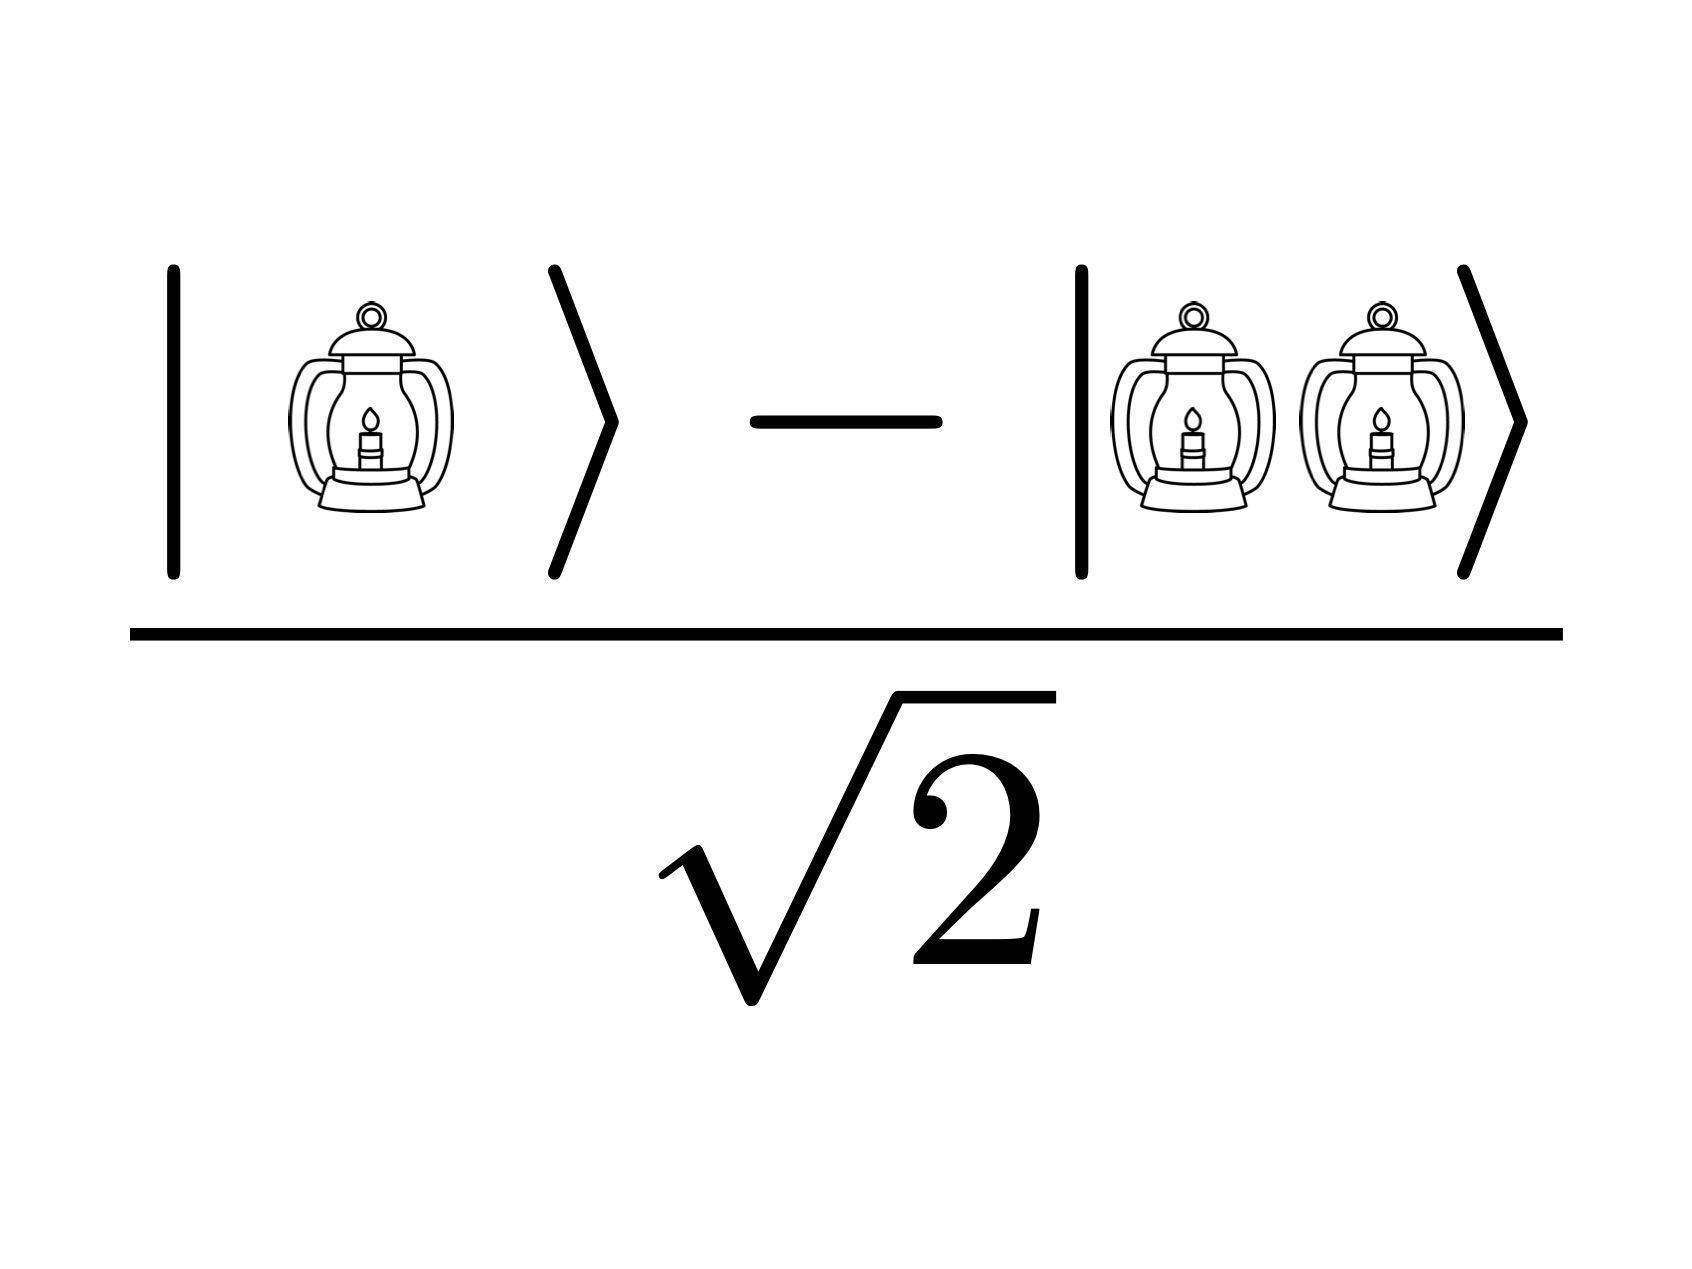 One if by land minus two if by sea, over the square-root of two